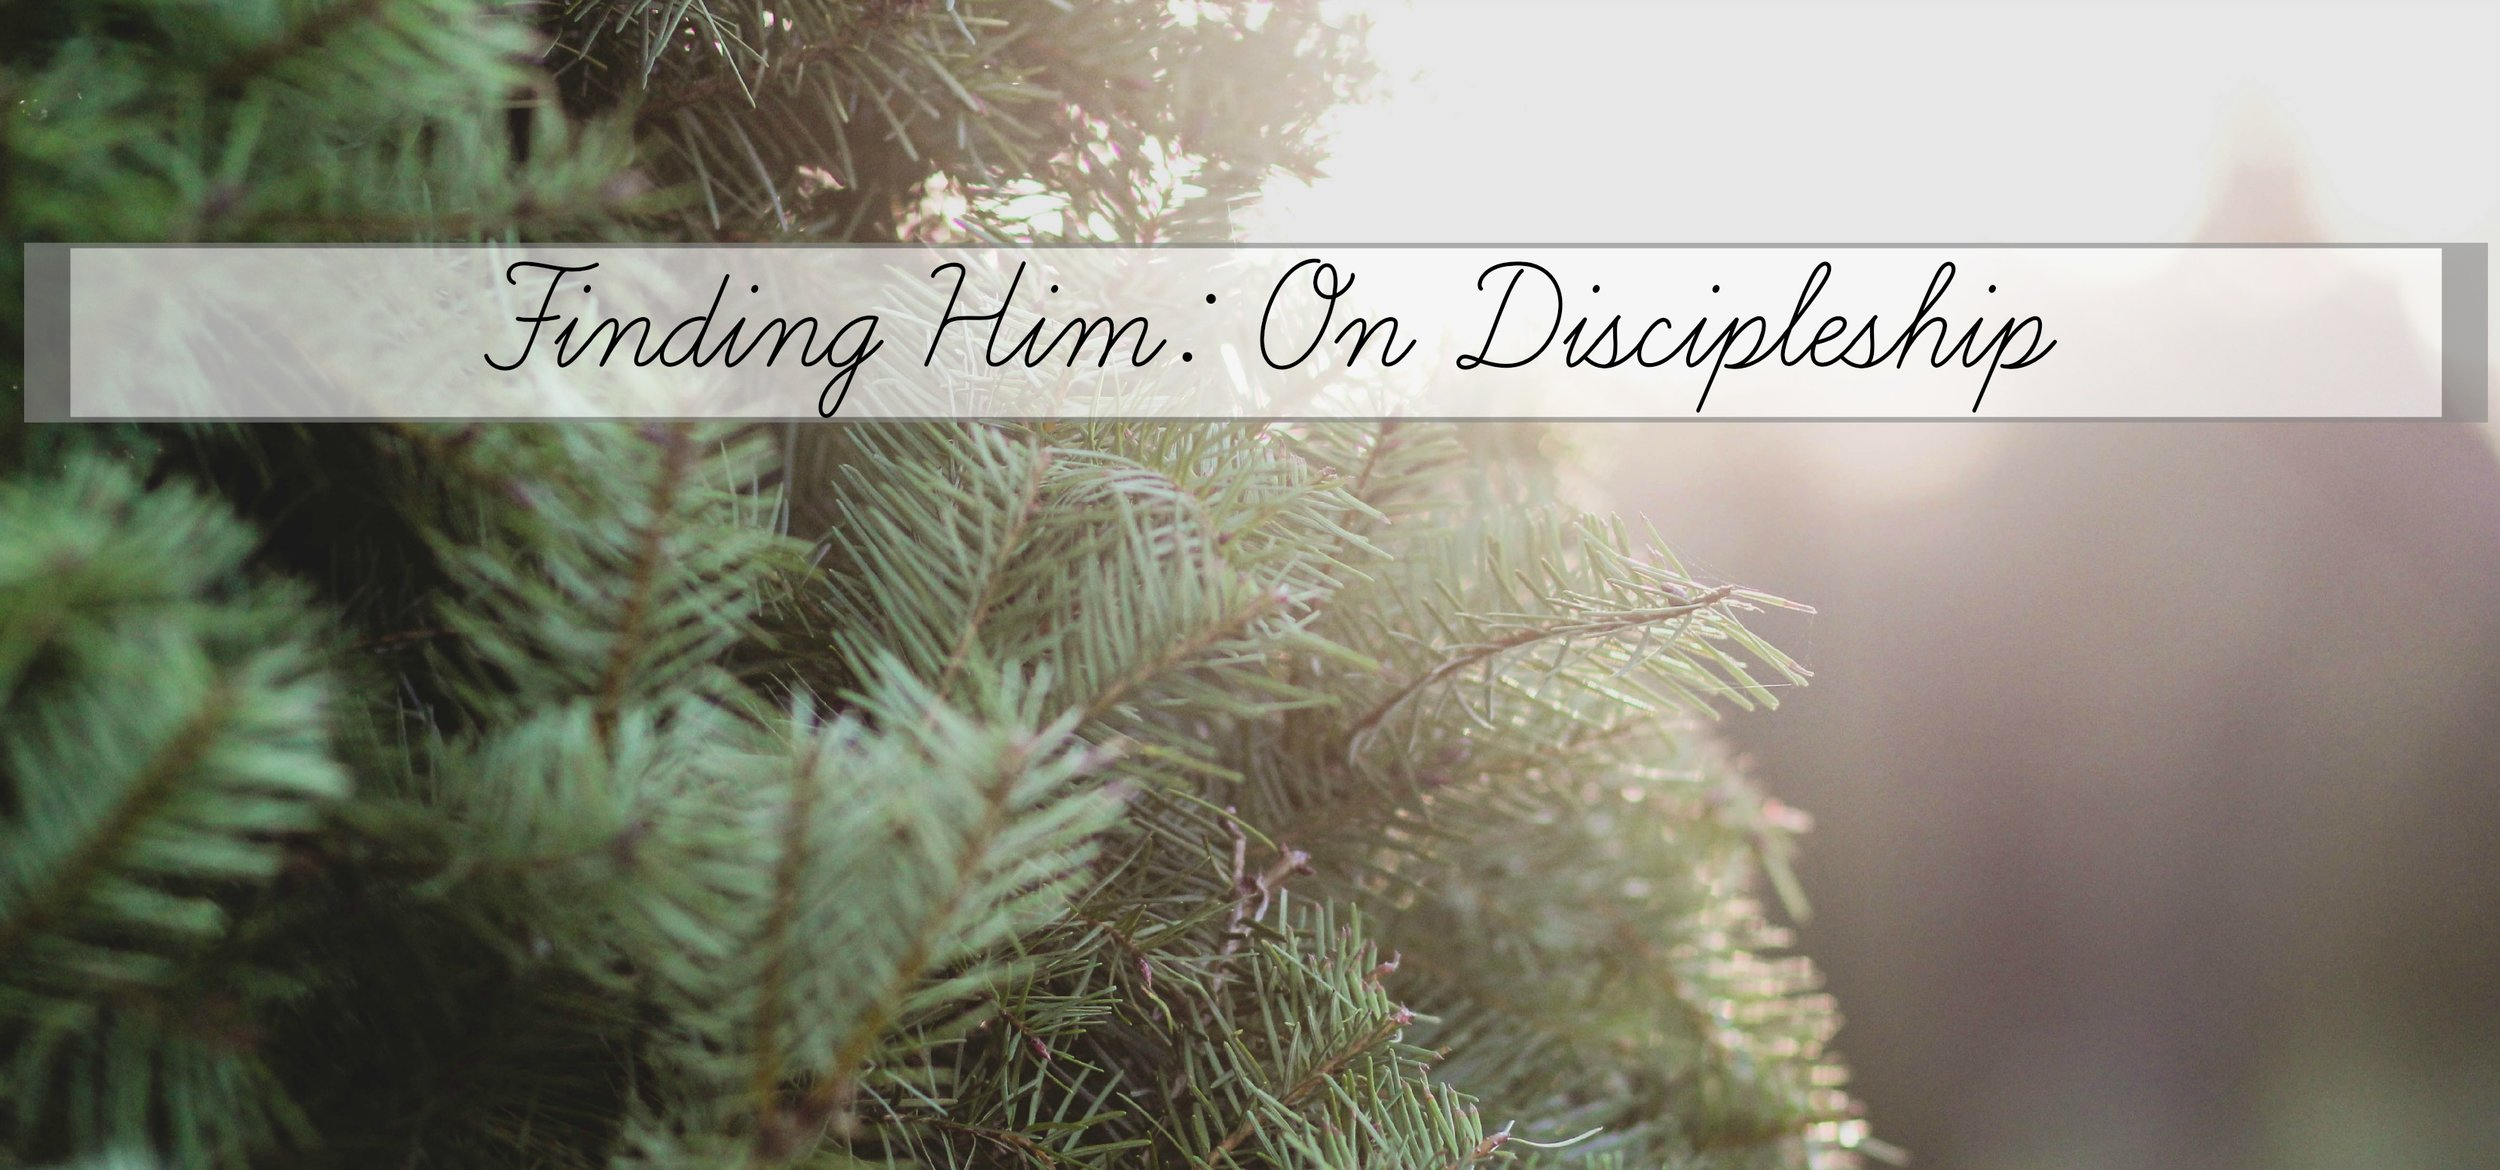 on discipleship